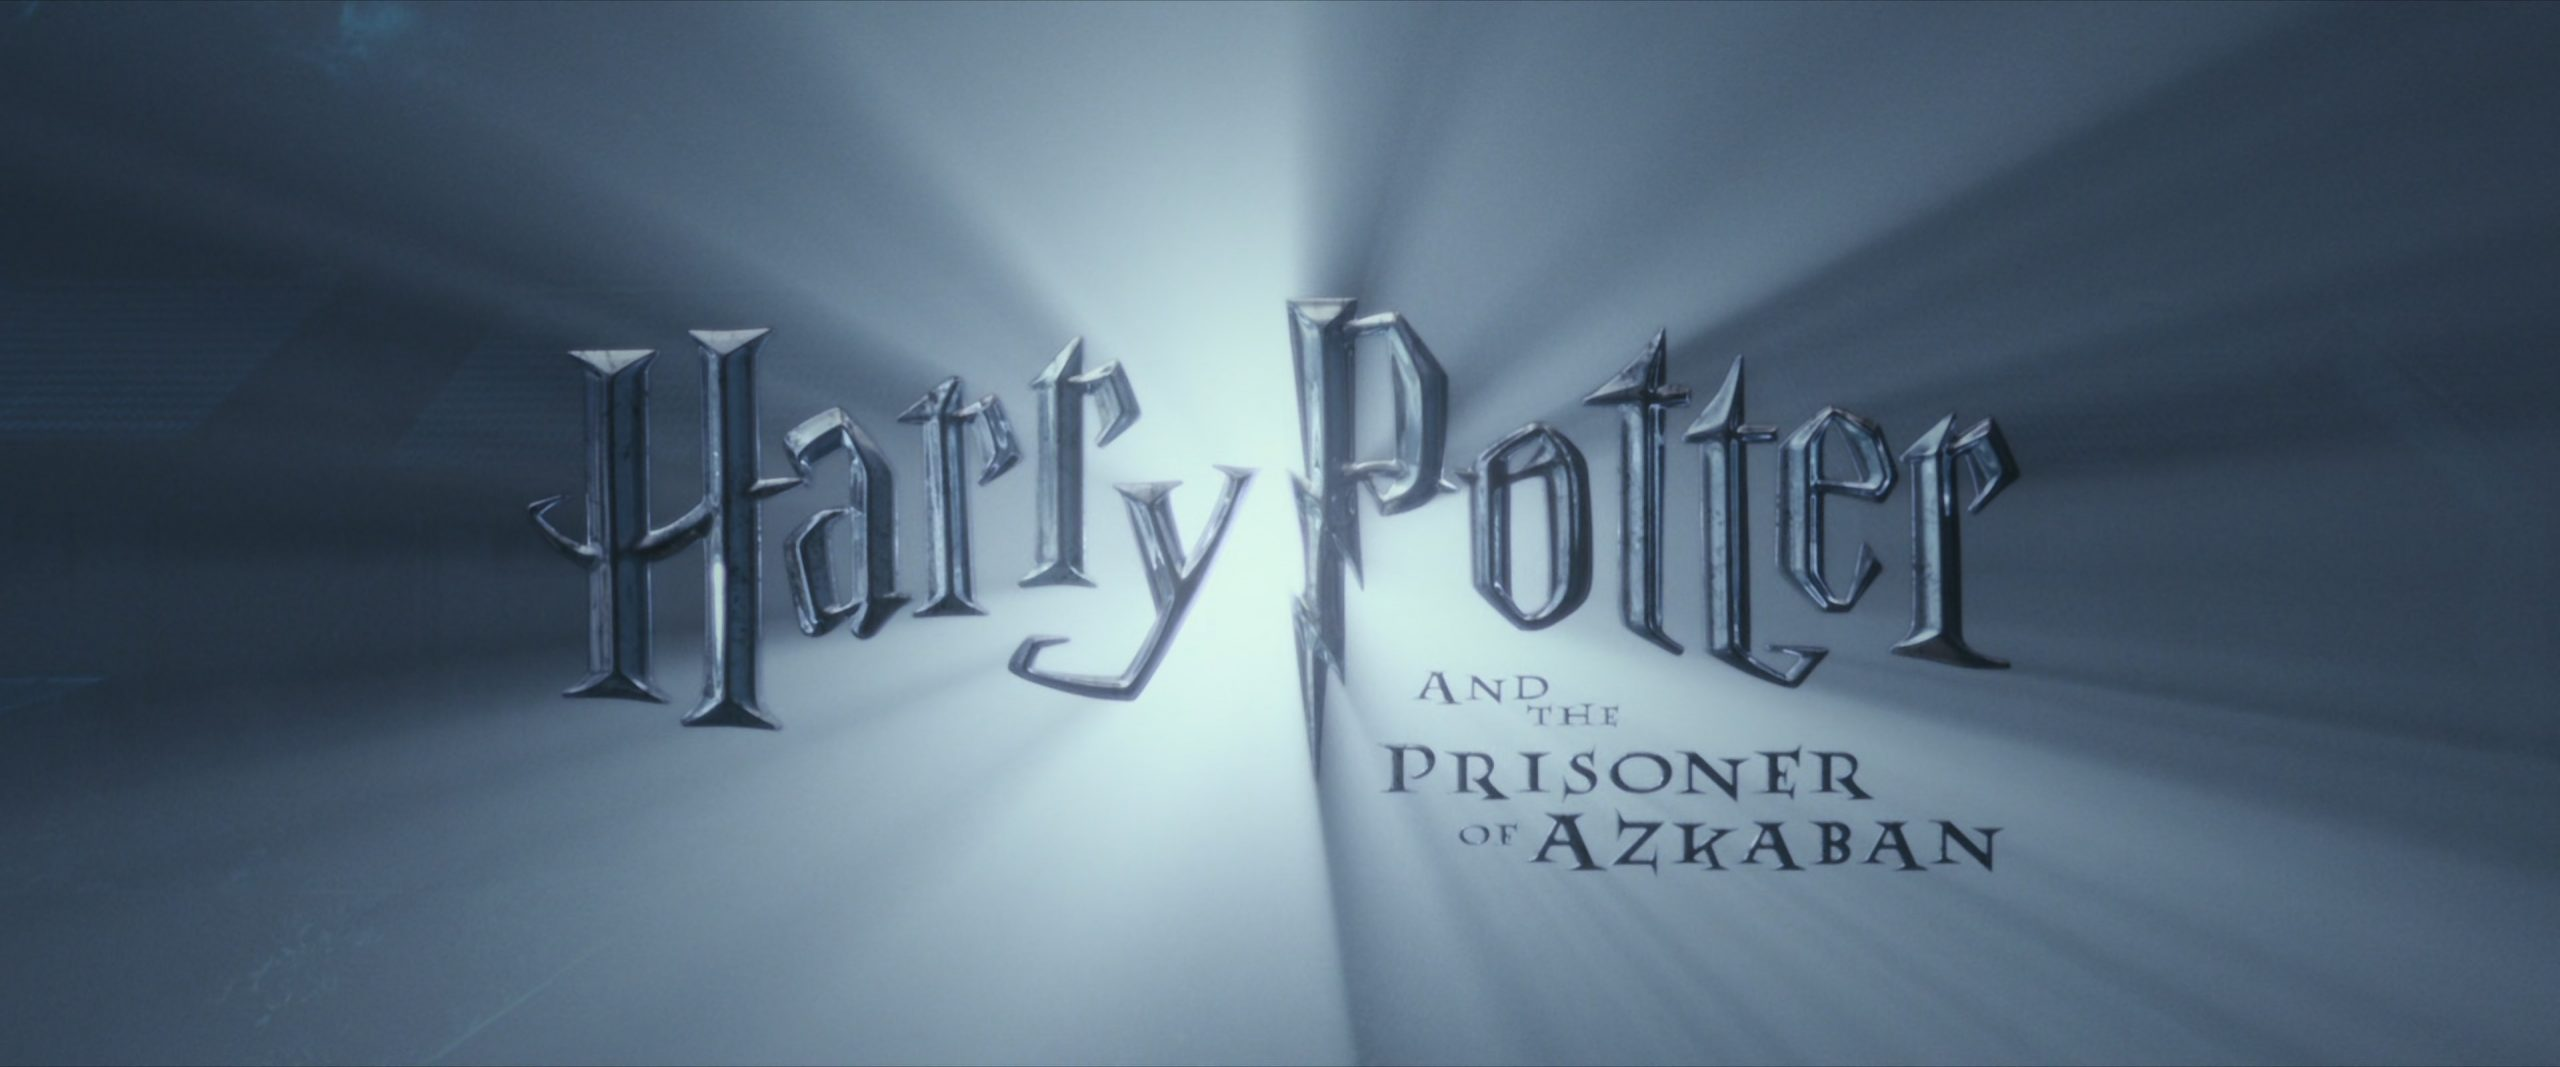 Harry Potter and the Prisoner of Azkaban (2004) [4K]